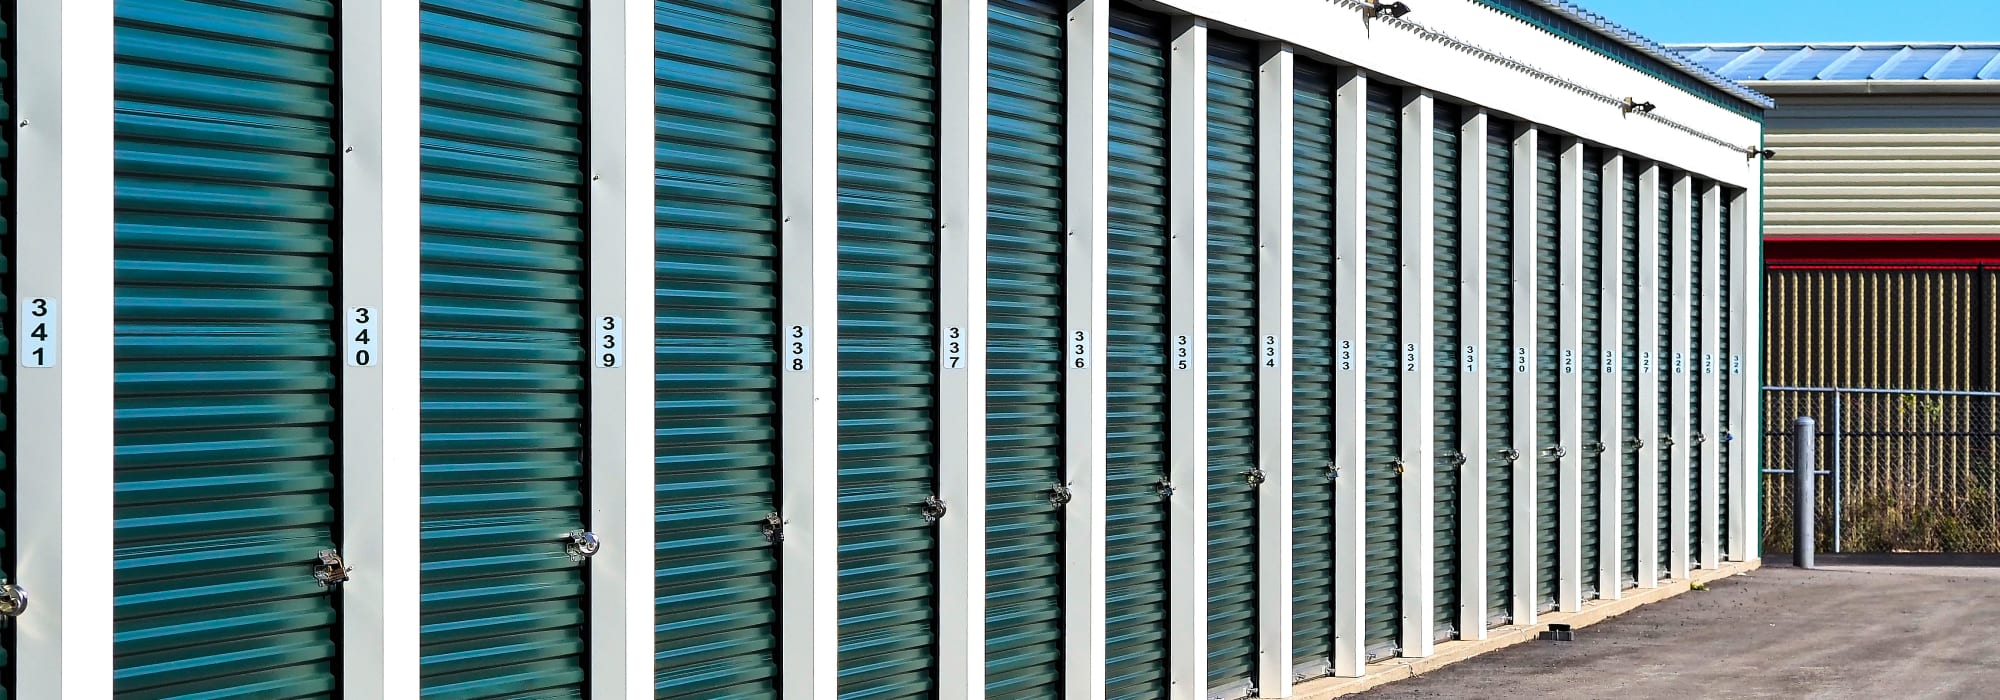 Apple Self Storage - Collingwood in Collingwood, Ontario, exterior units with green doors